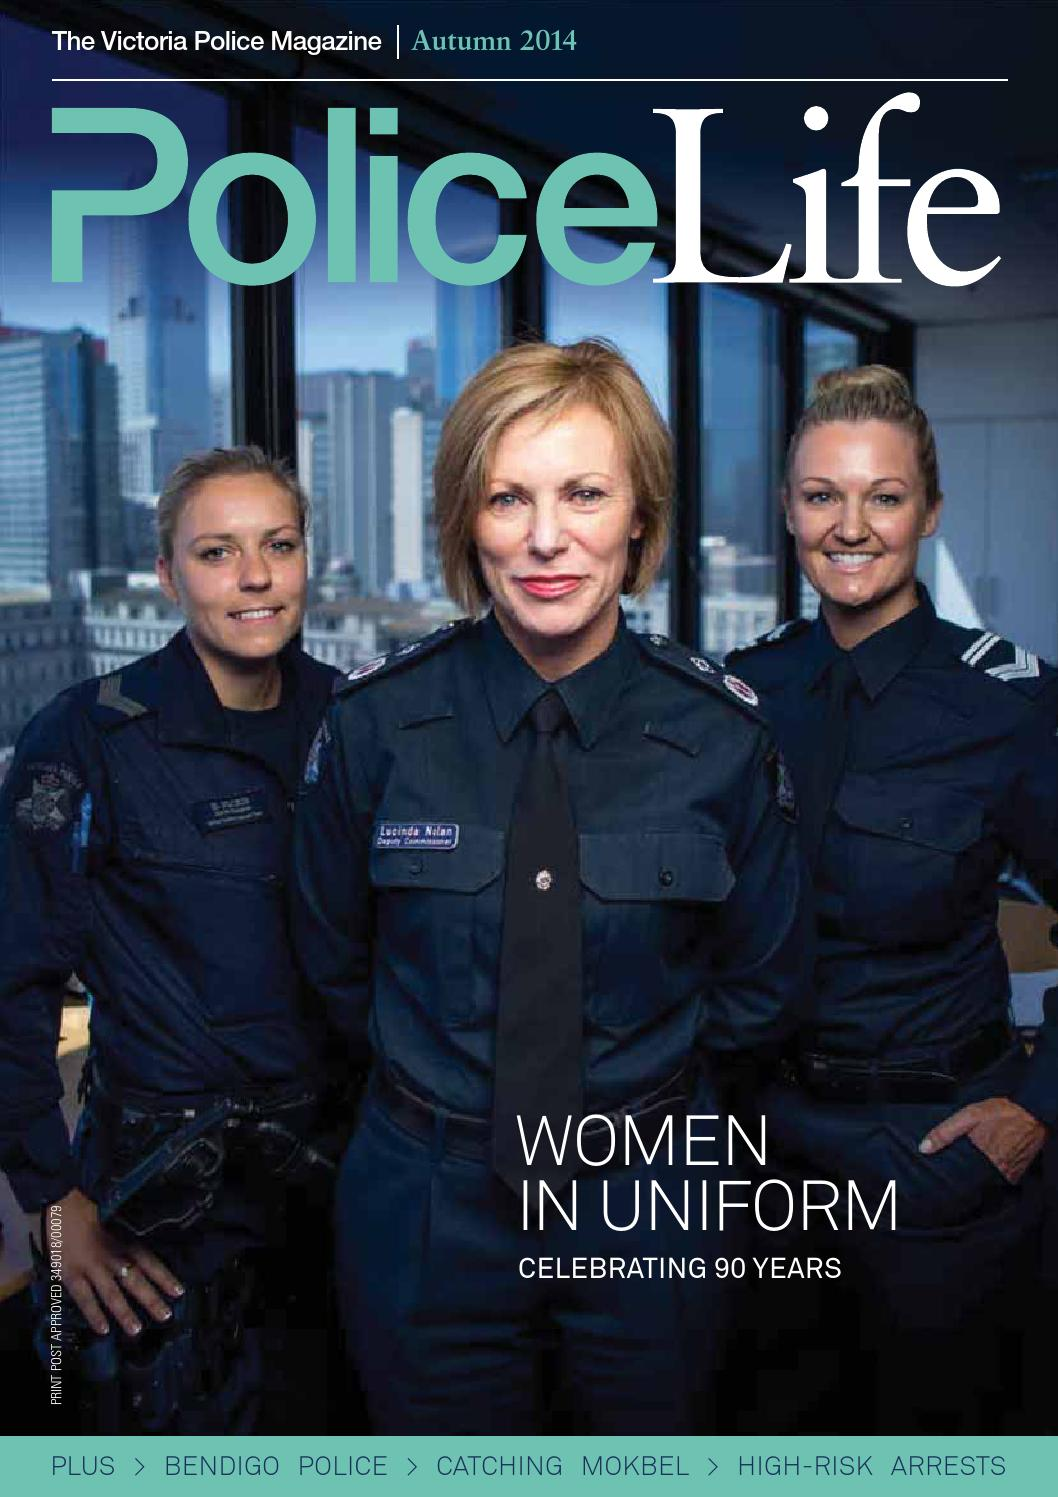 Police Life, Autumn edition 2014 by Victoria Police - issuu